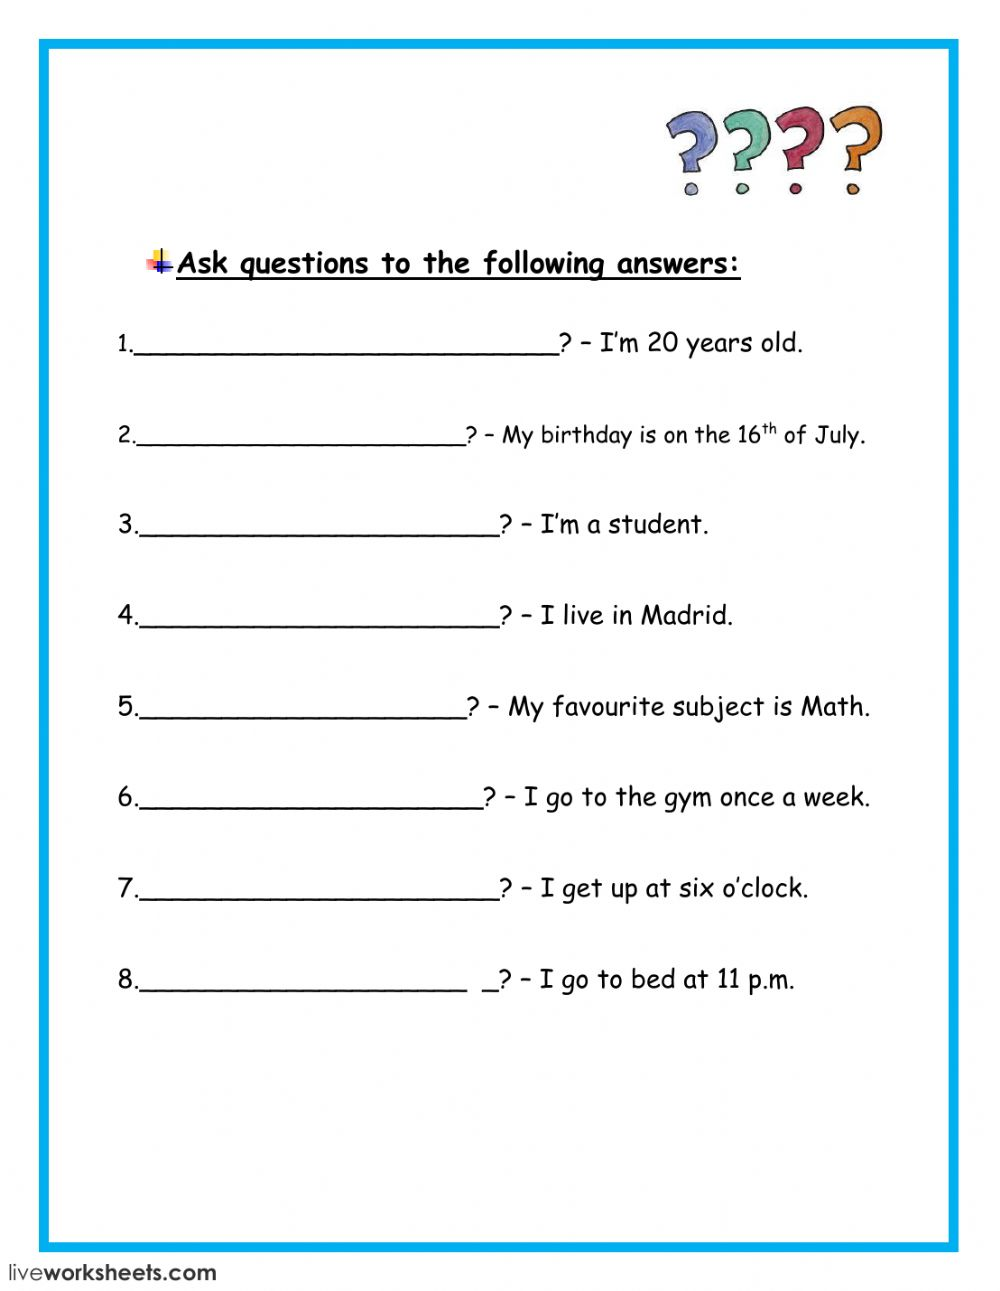 Asking questions - Interactive worksheet